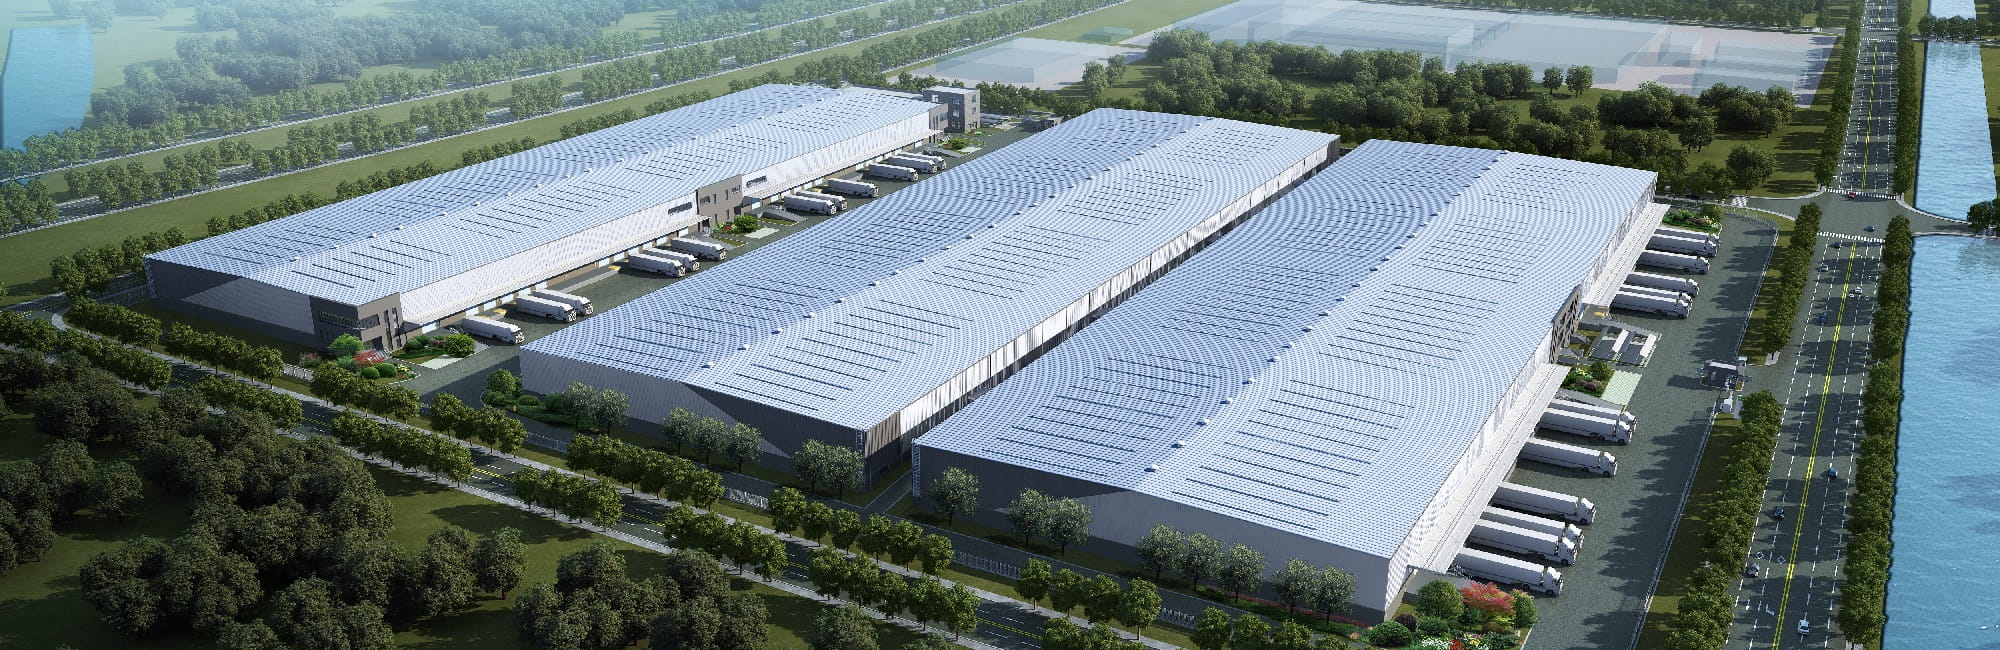 Goodman Wujiang Distribution Centre